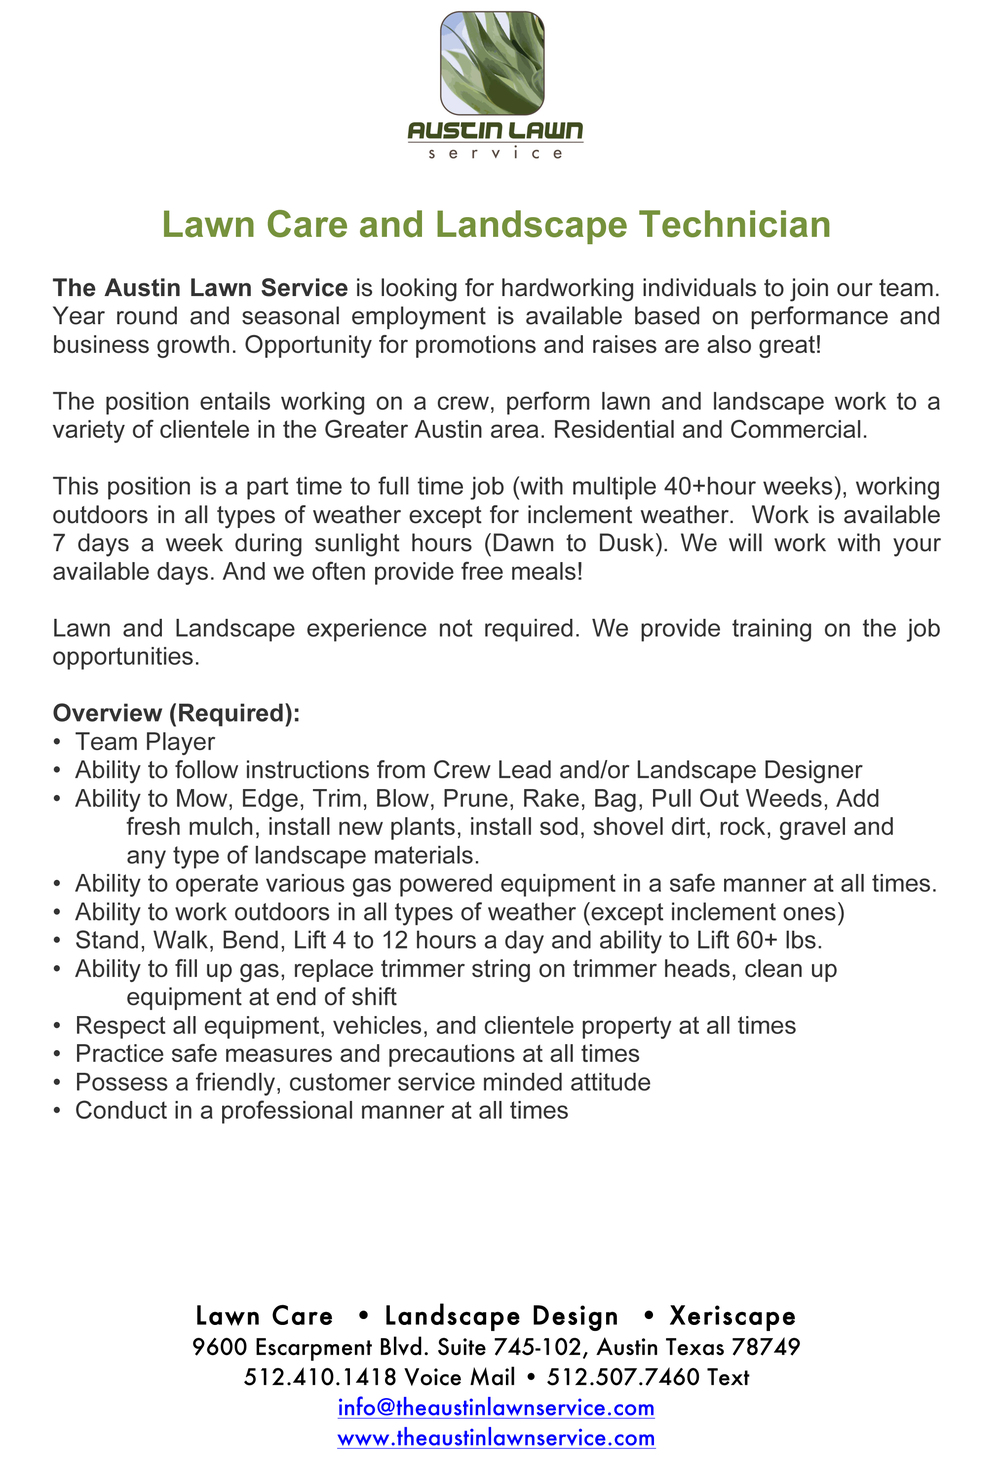 Microsoft Word - Lawn Care and Landscape Technician.docx